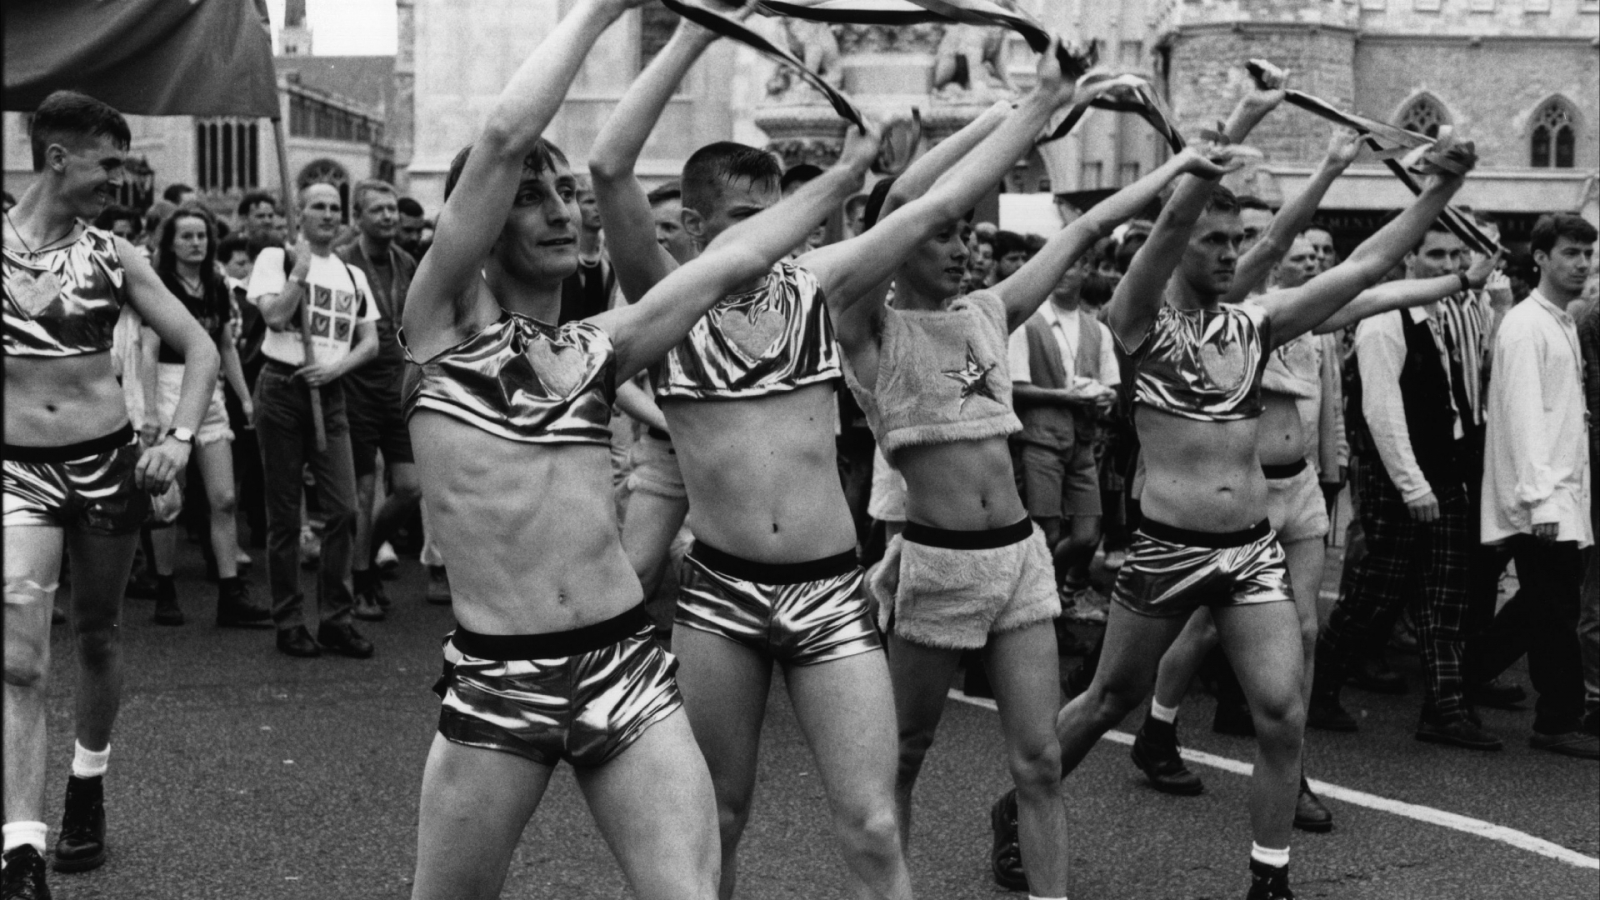 How the lives of gay men were changed with the Sexual Offences Act of 1967